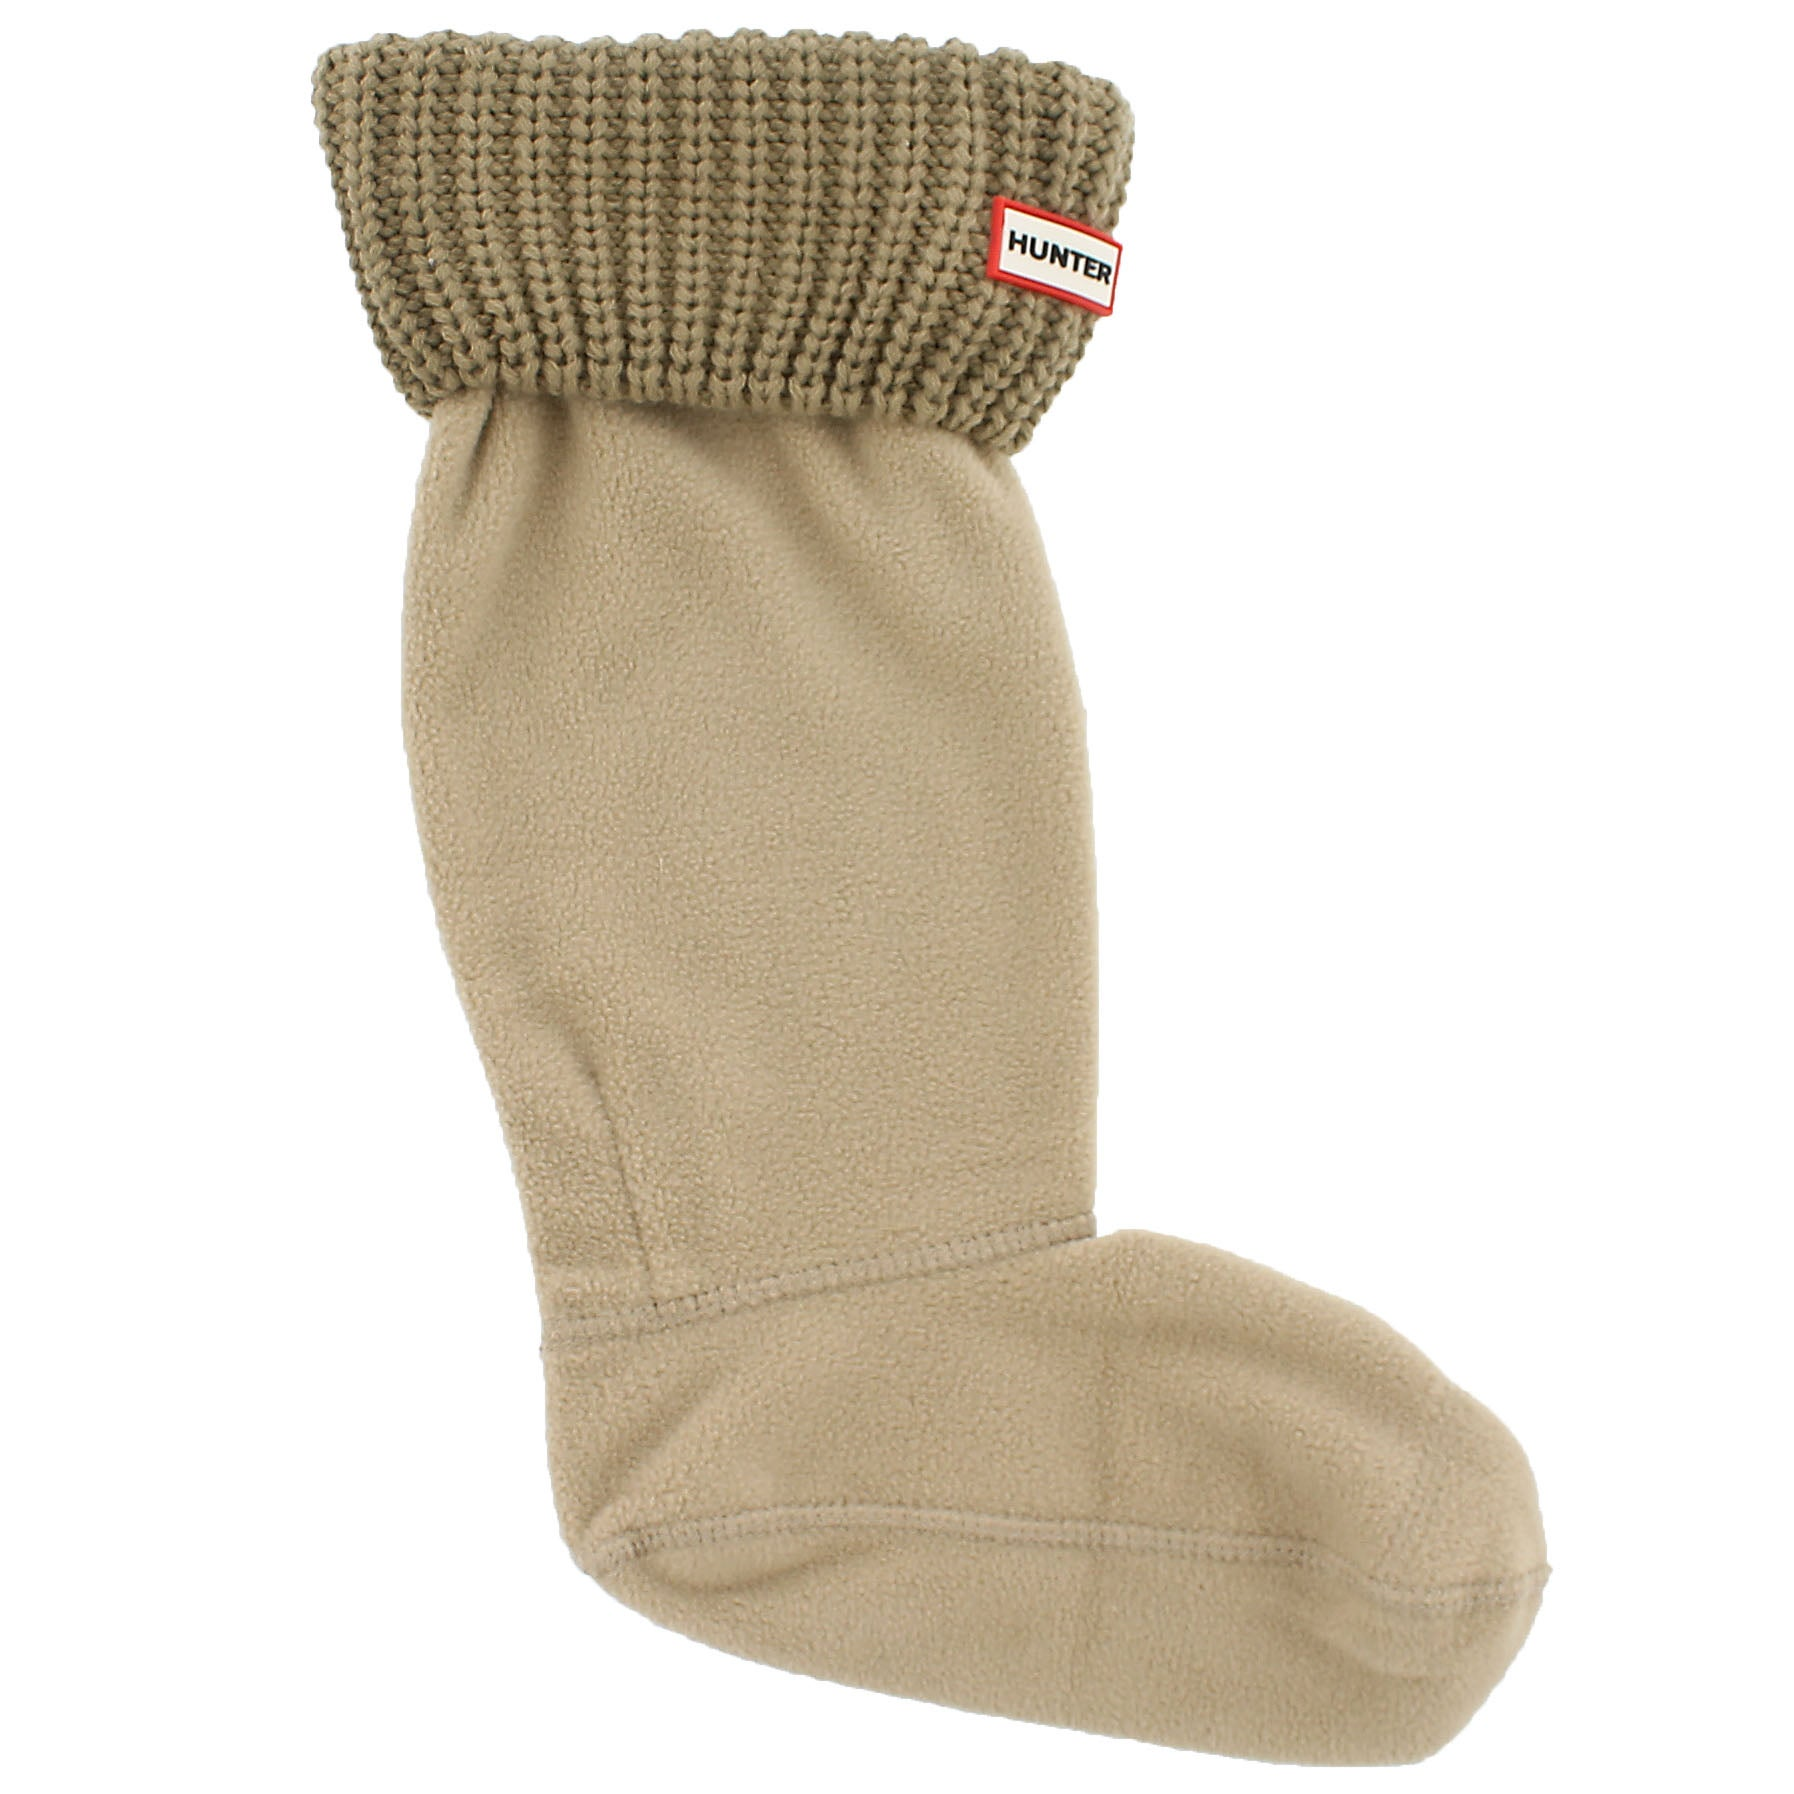 Lds Half Cardigan light sand boot sock